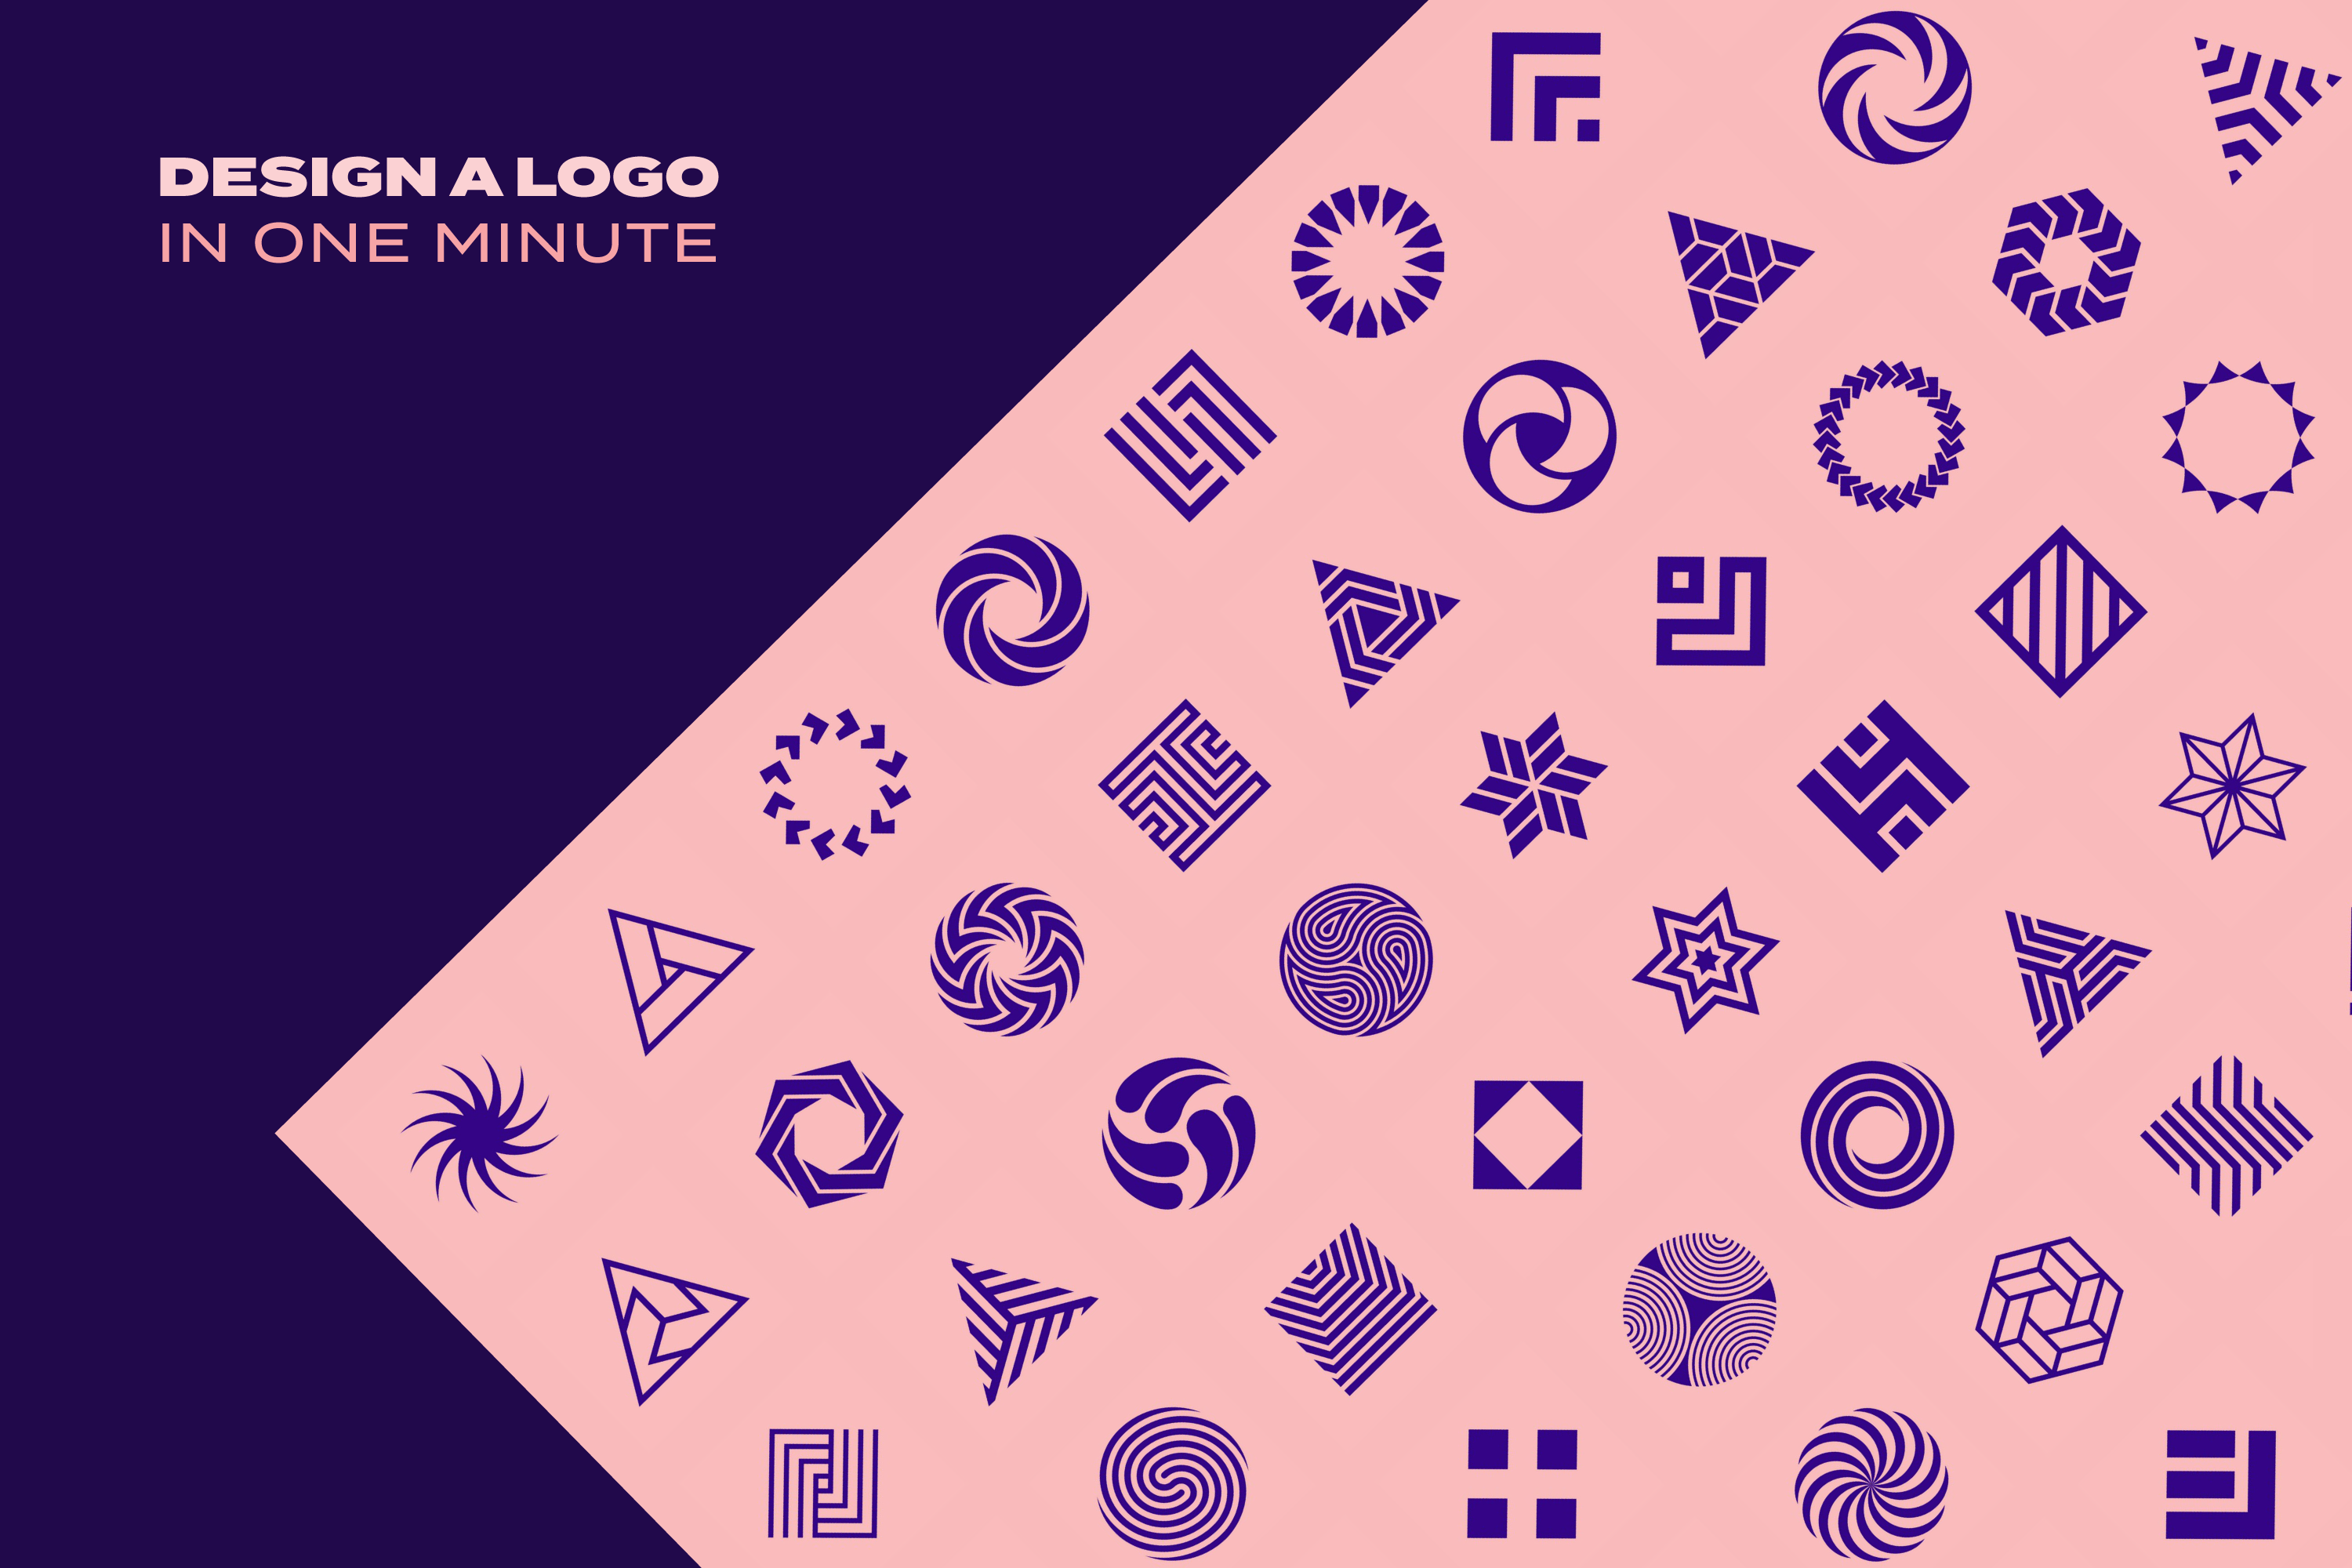 96 Geometric shapes & logo marks collection VOL.1 example image 10